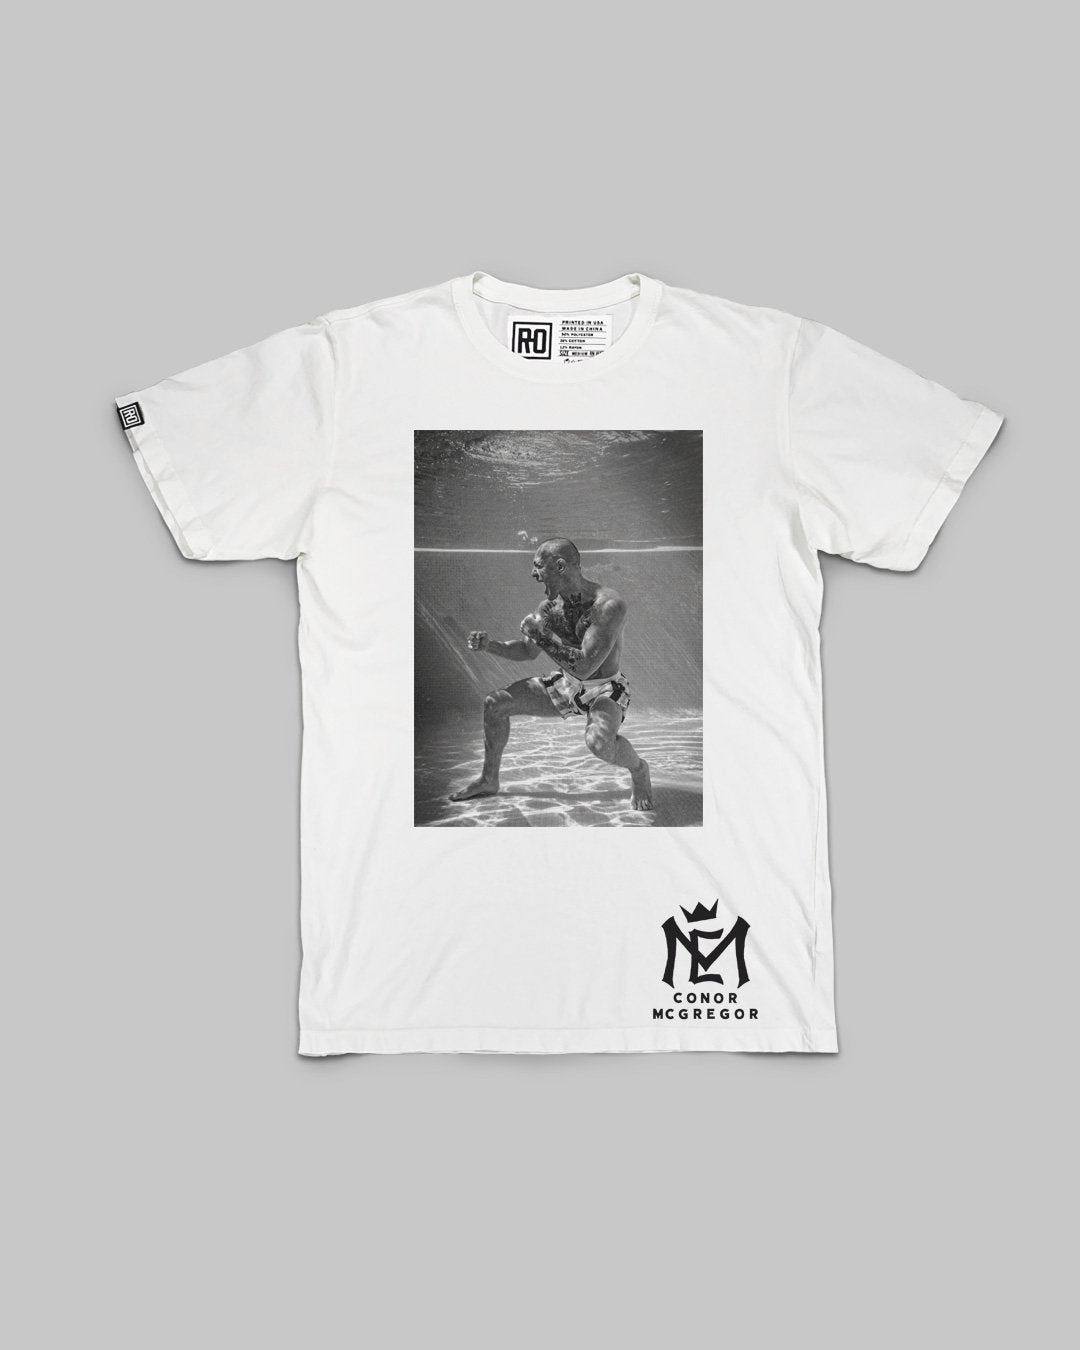 Conor McGregor Underwater Champ Champ Tee - Copasetic Clothing Ltd. dba Roots of Fight